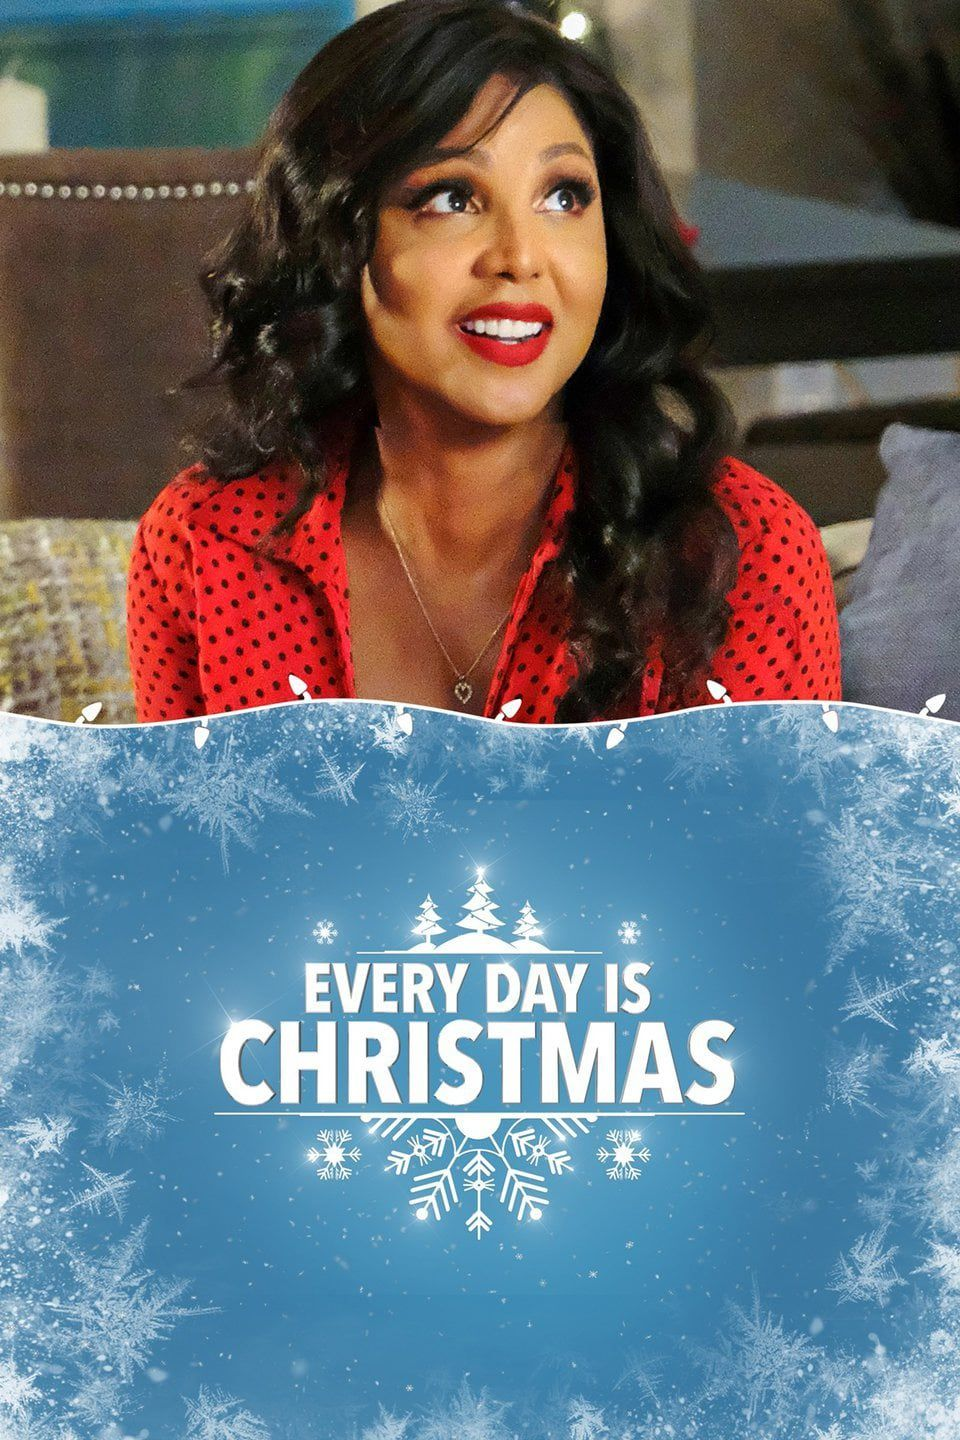 Watch Every Day Is Christmas FULL MOVIE HD1080p Sub English #EveryDayIsChristmas # #fullmovie # ...